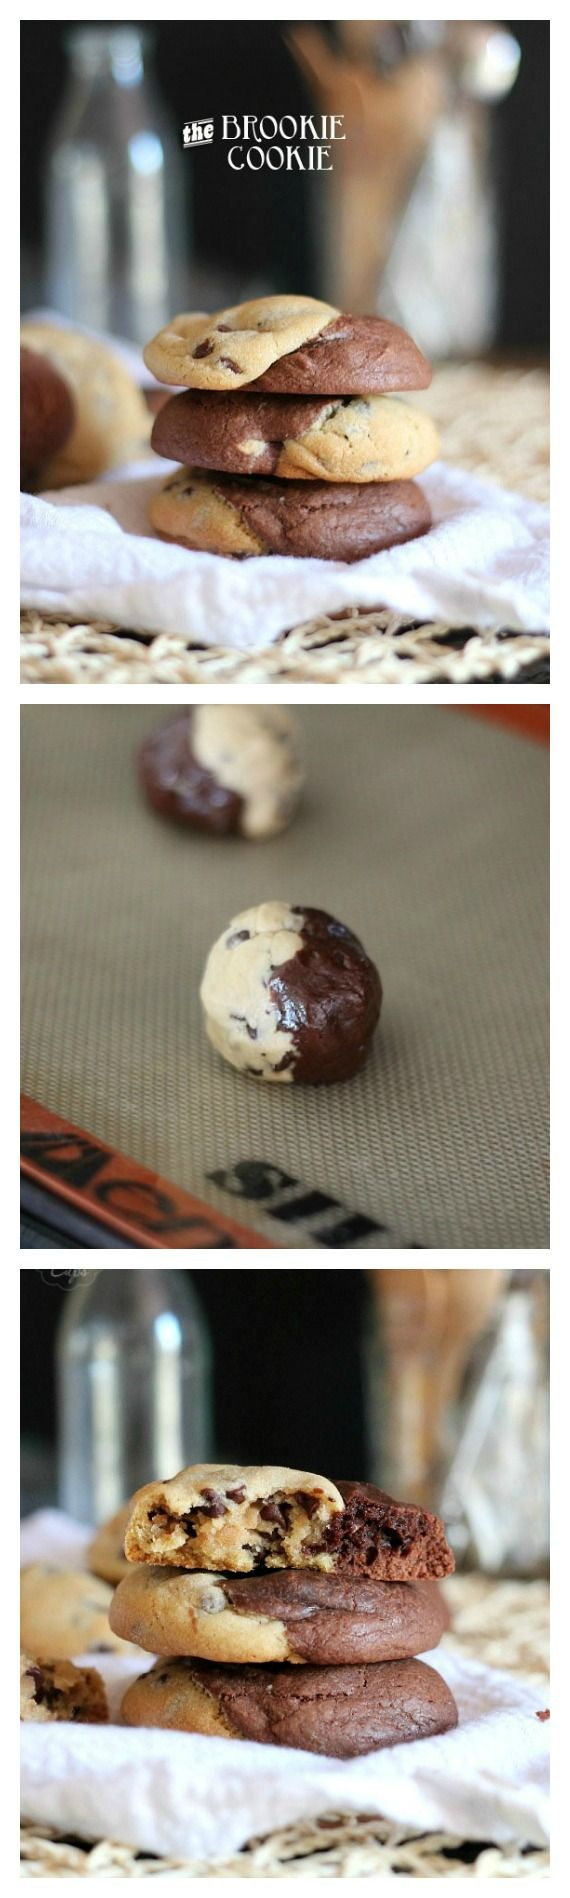 Pinning just for the name. I never realized I was a brownie and a cookie. Brookie Cookies! A brownie and a chocolate chip cookie all in one!